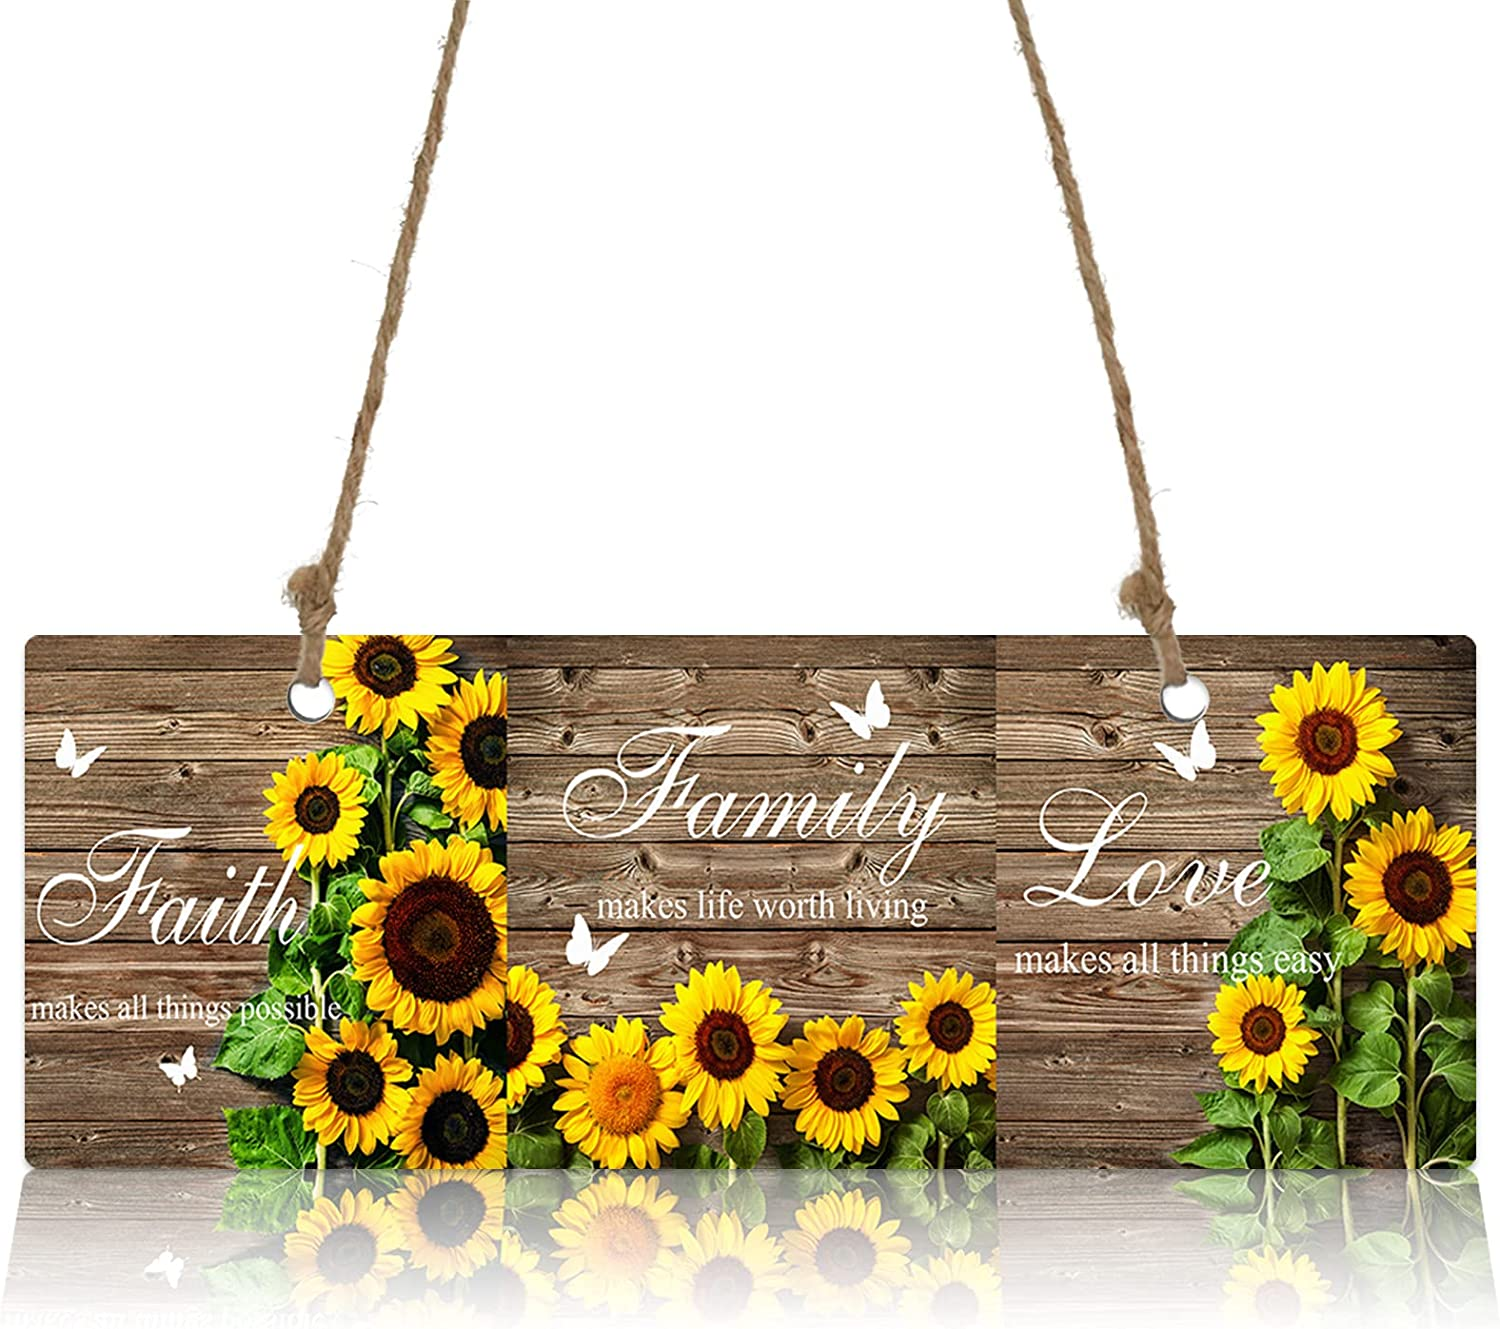 Factory outlet Wall Sign Wood Plaque Vintage Latest item Welcome Pla Sunflowers Wooden Farm